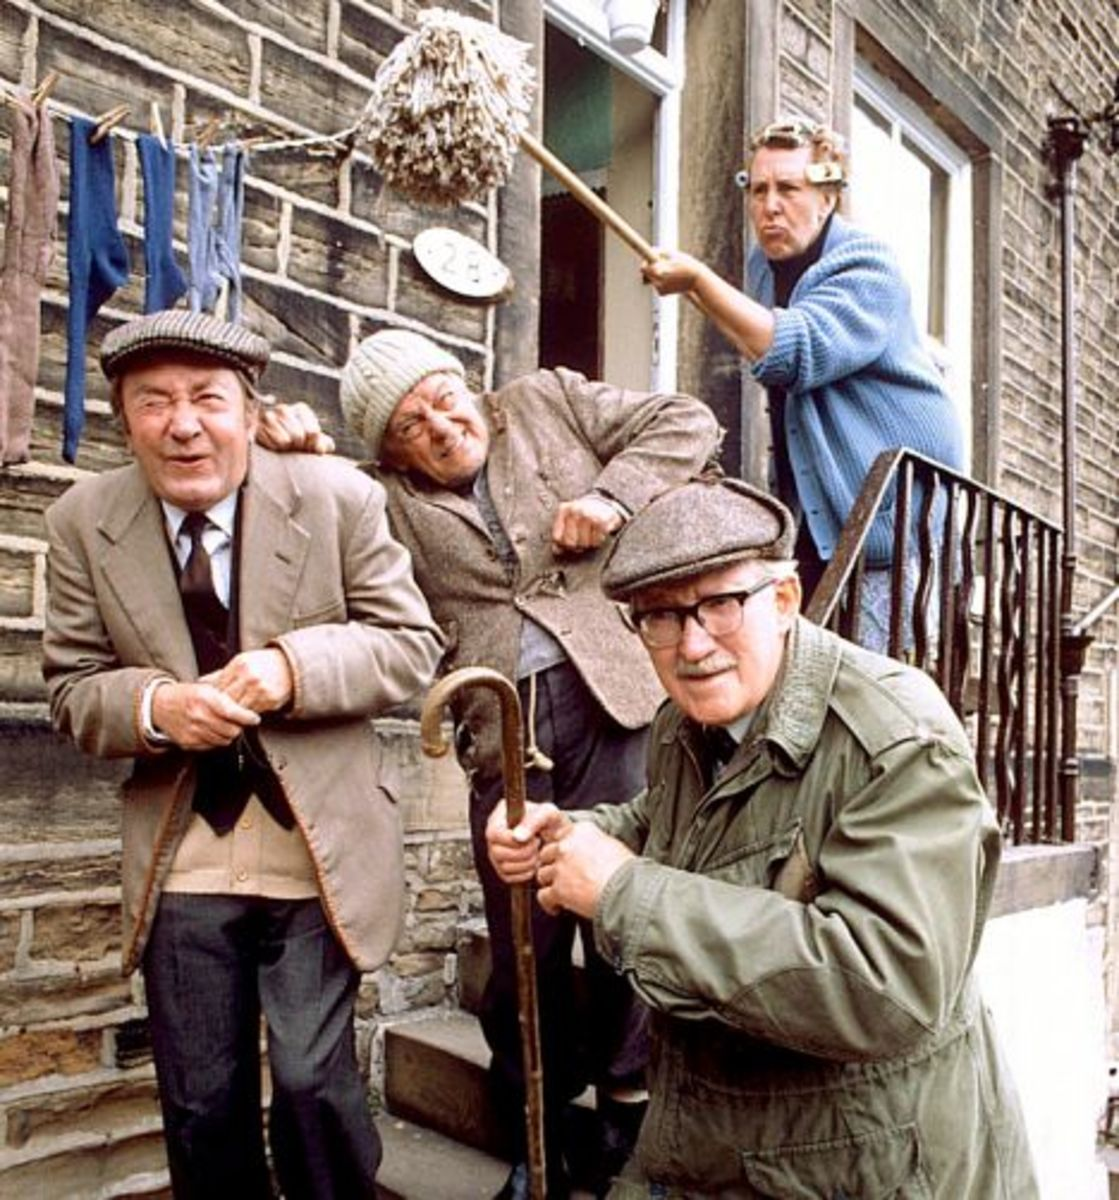 Compo & Co -  Norah Batty conducting her usual 'sorting out' with her trusty mop . Left-right: Peter Sallis, Bill Owen, Brian Wilde, Kathy Staff at rear.  Peter Sallis more recently did the voice of Wallis, the cheese-loving owner of clever Gromit